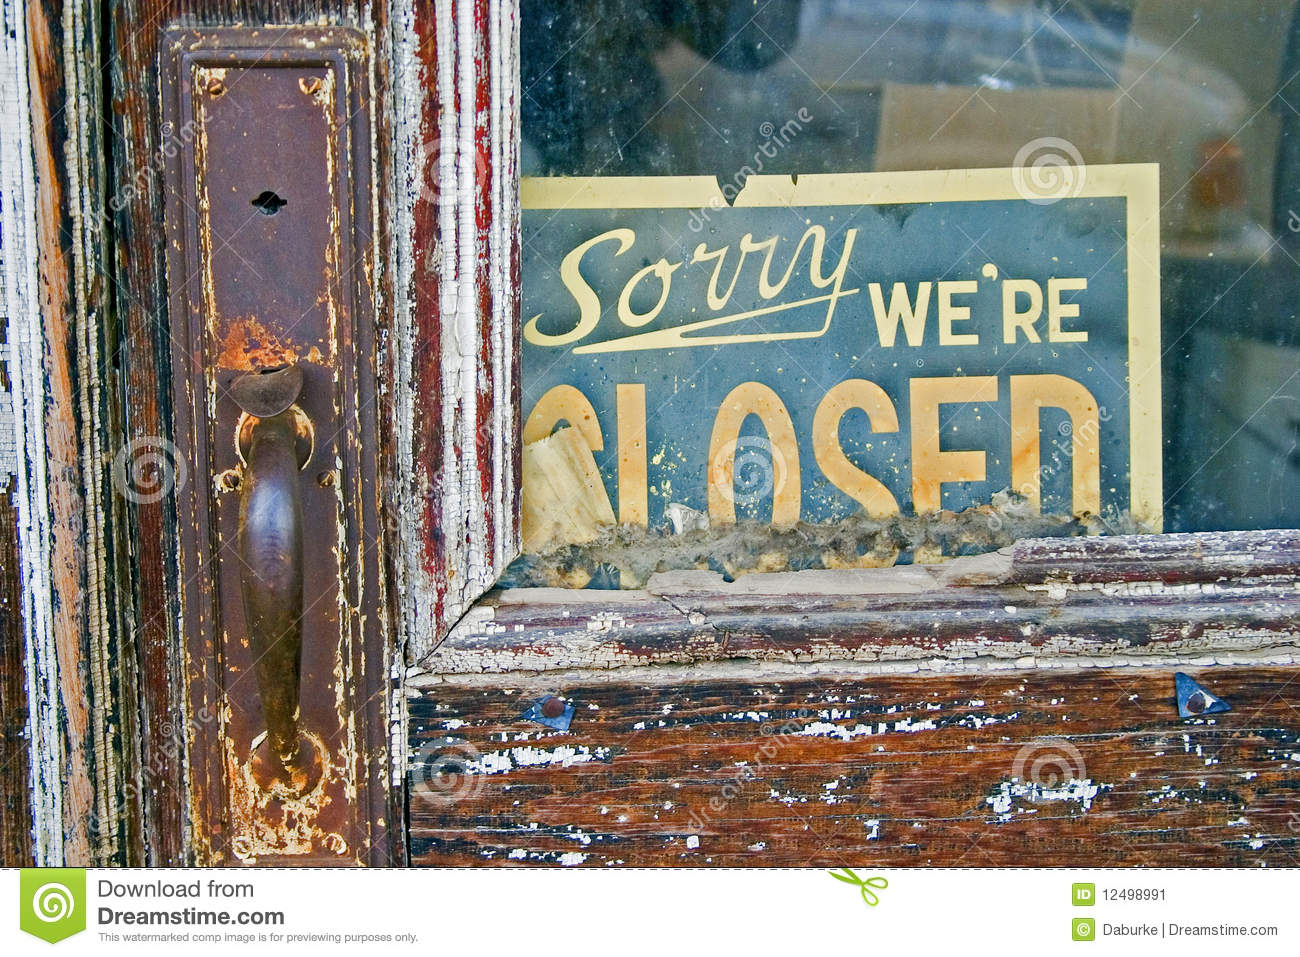 Sorry We re Closed sign